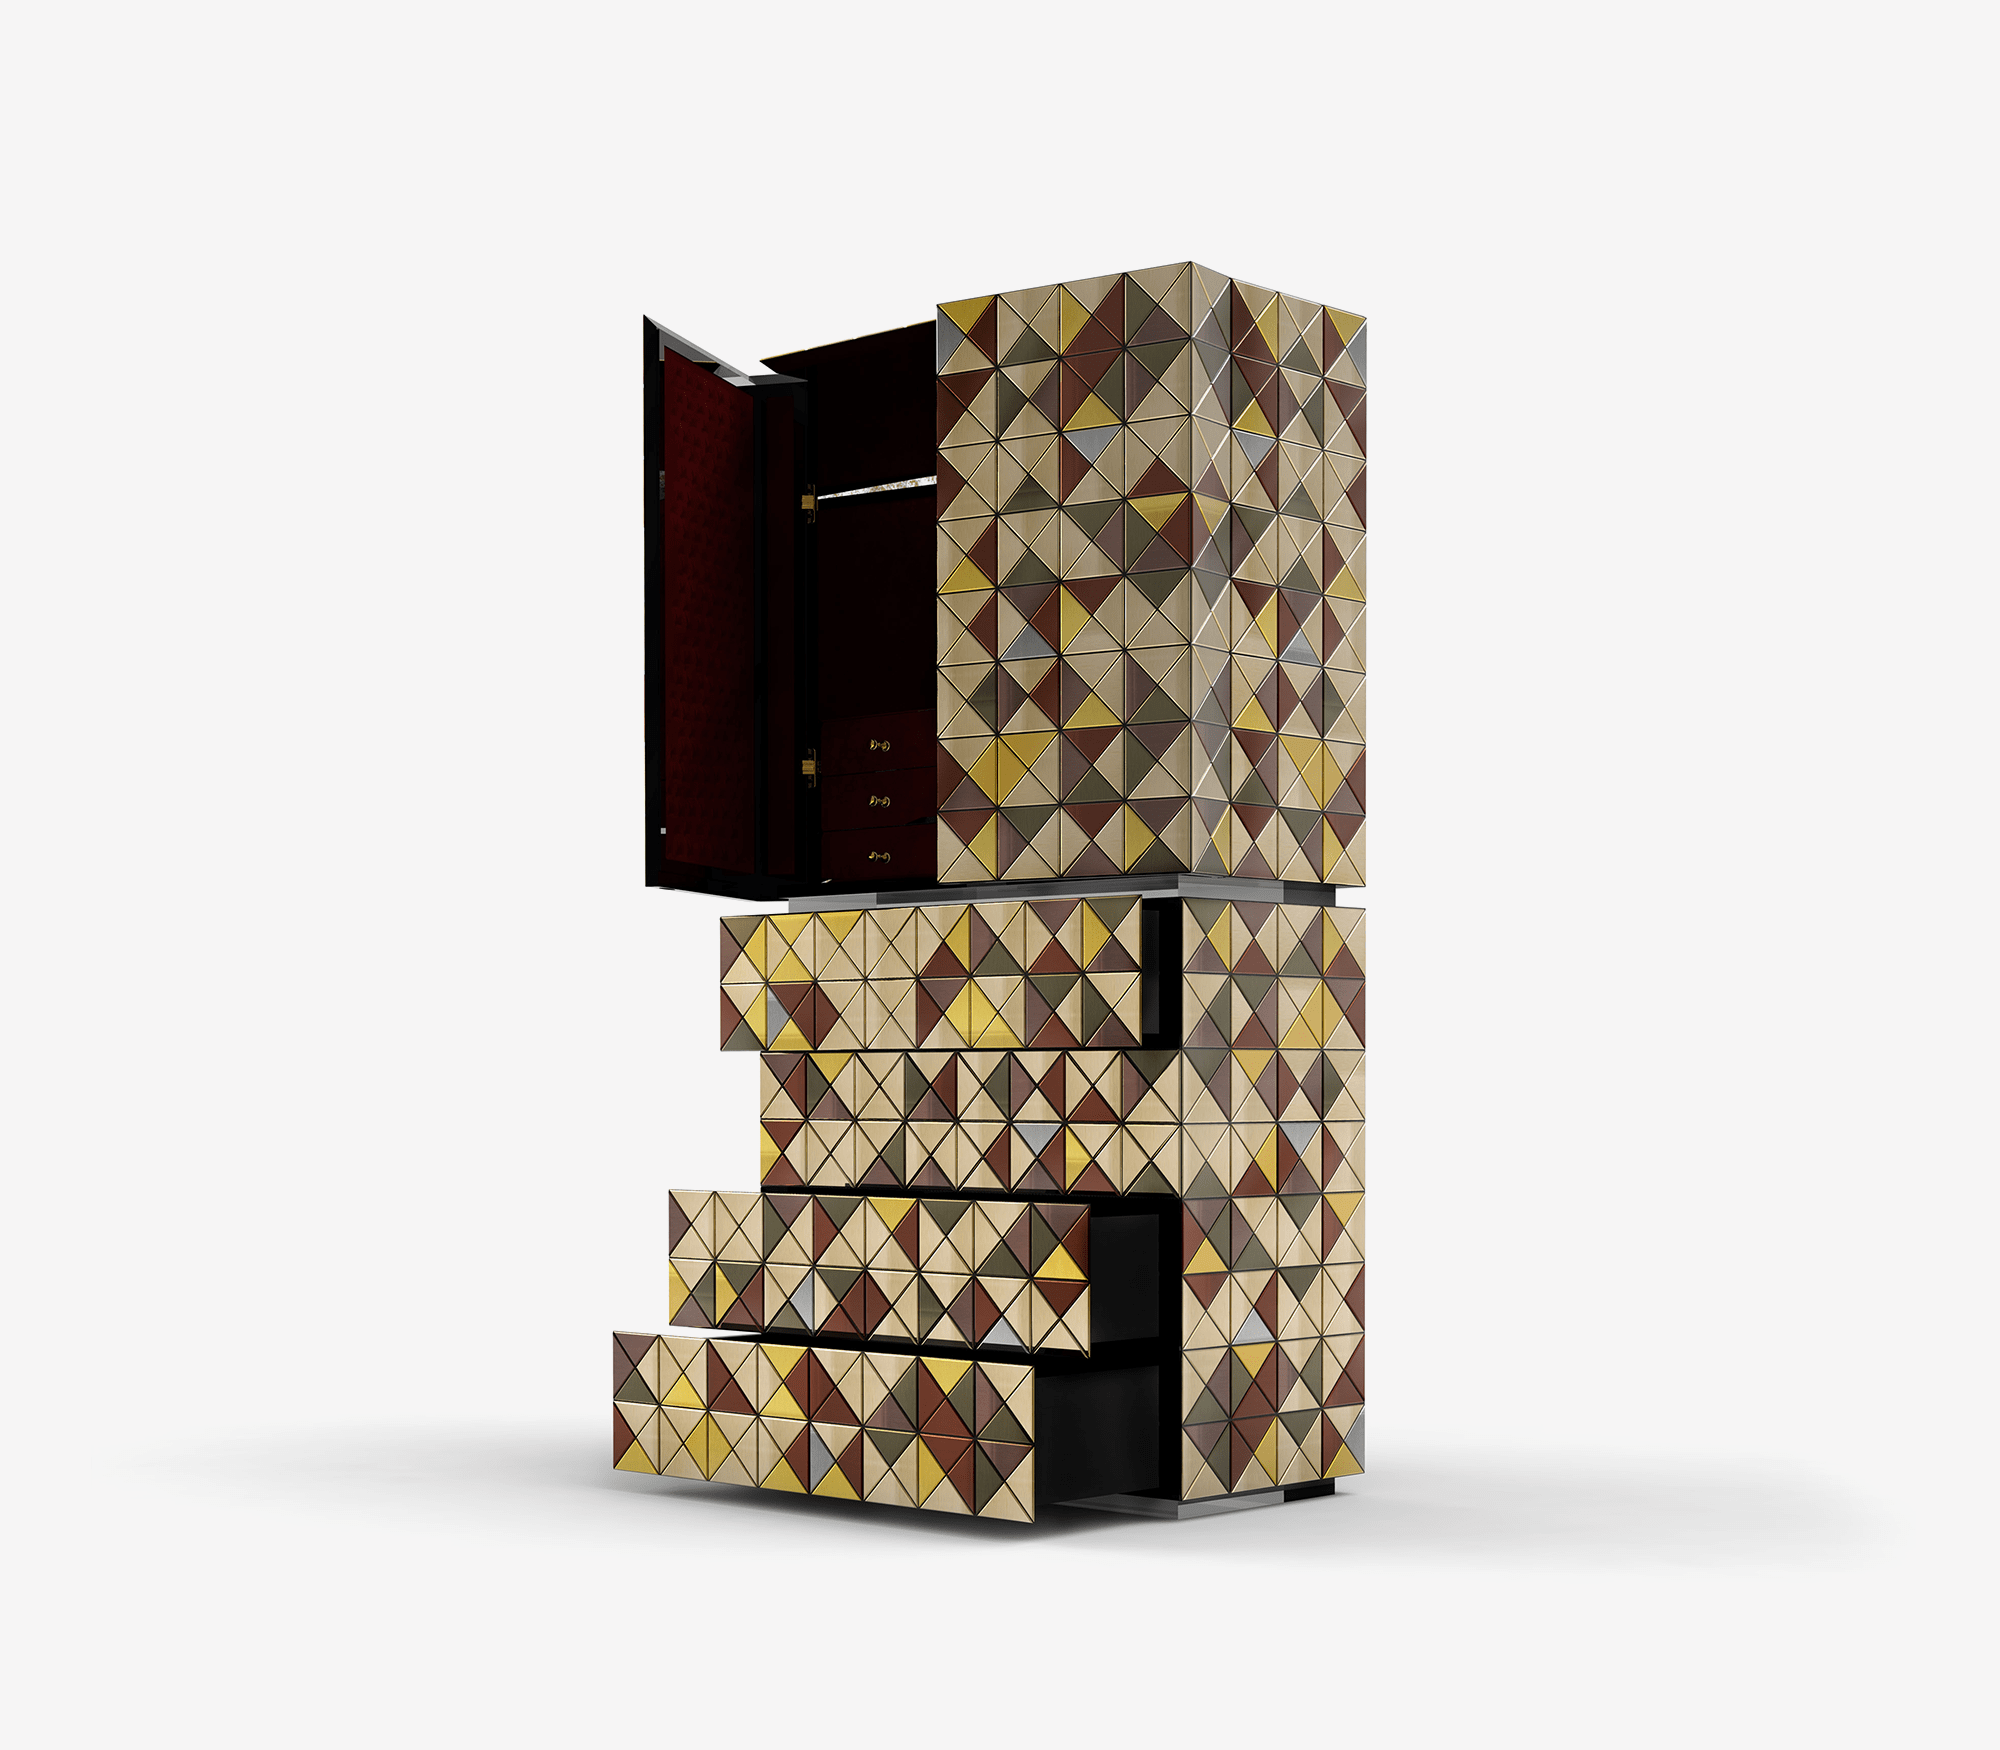 Pixel Anodized Cabinet by Boca do Lobo